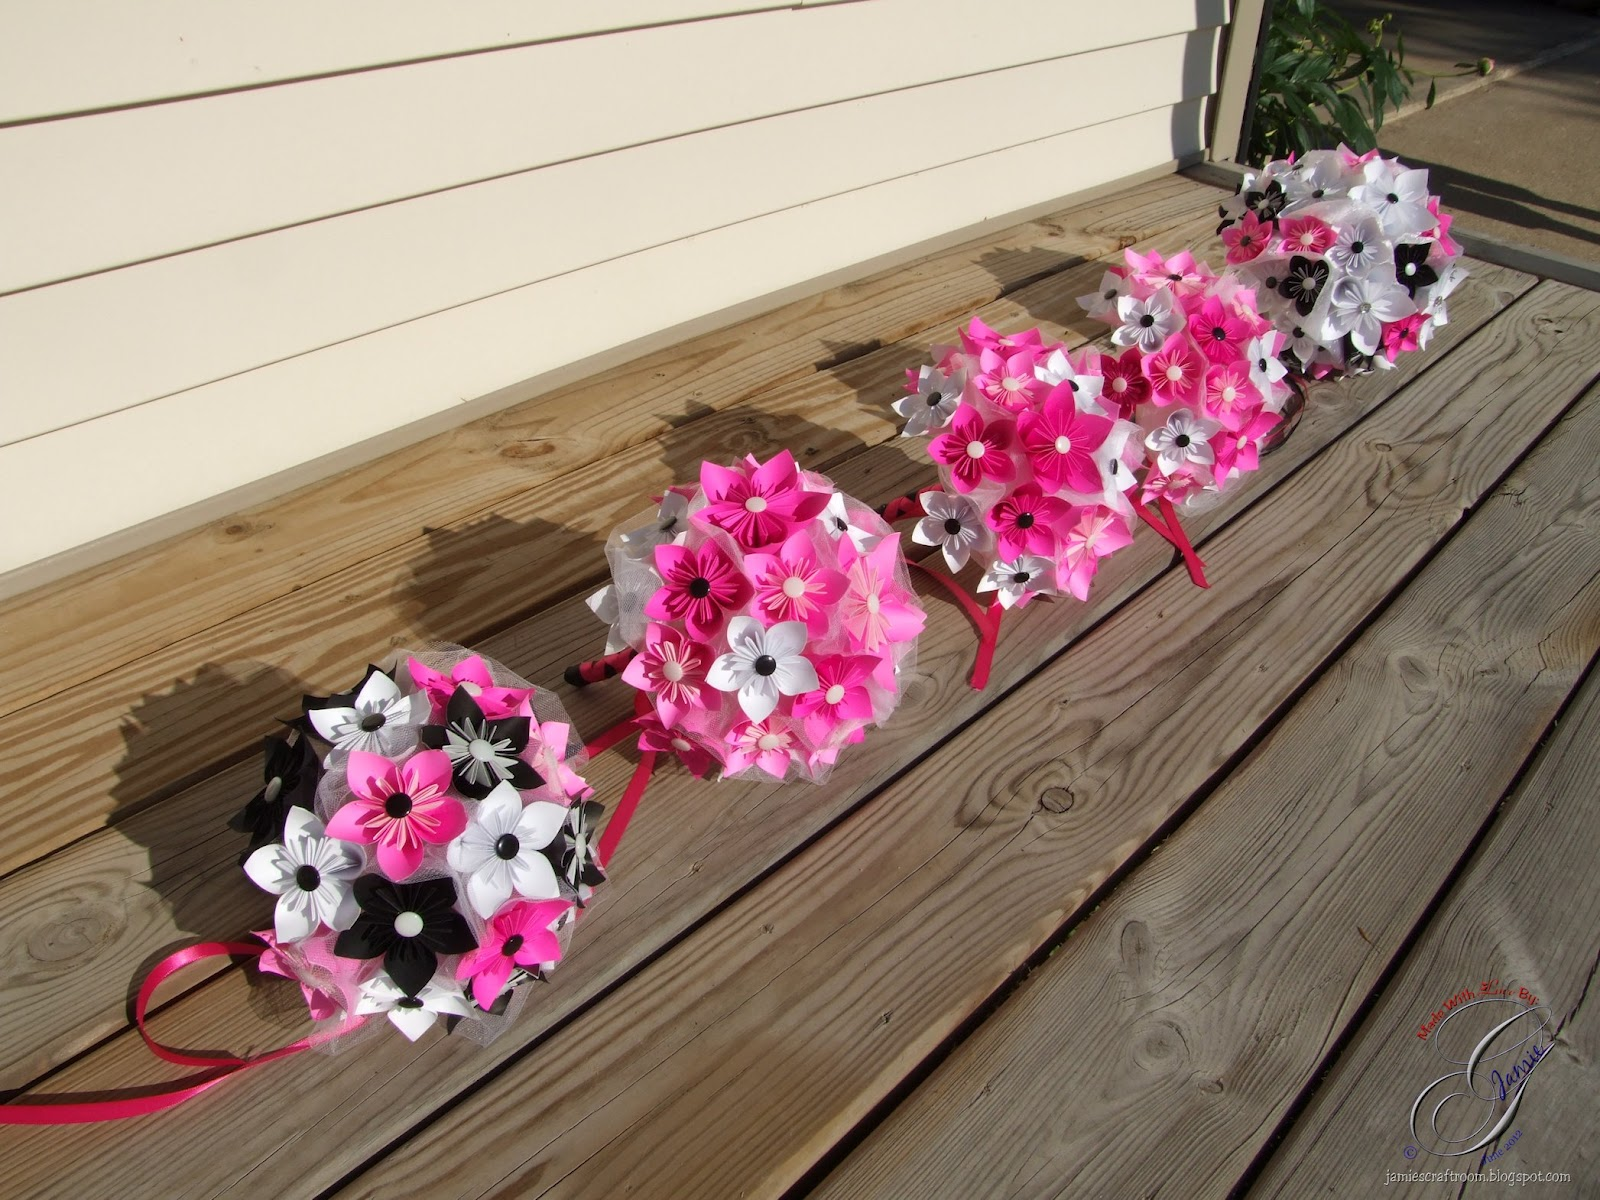 Jamie's Craft Room: Completed Kusudama Bridal Bouquets - photo#30